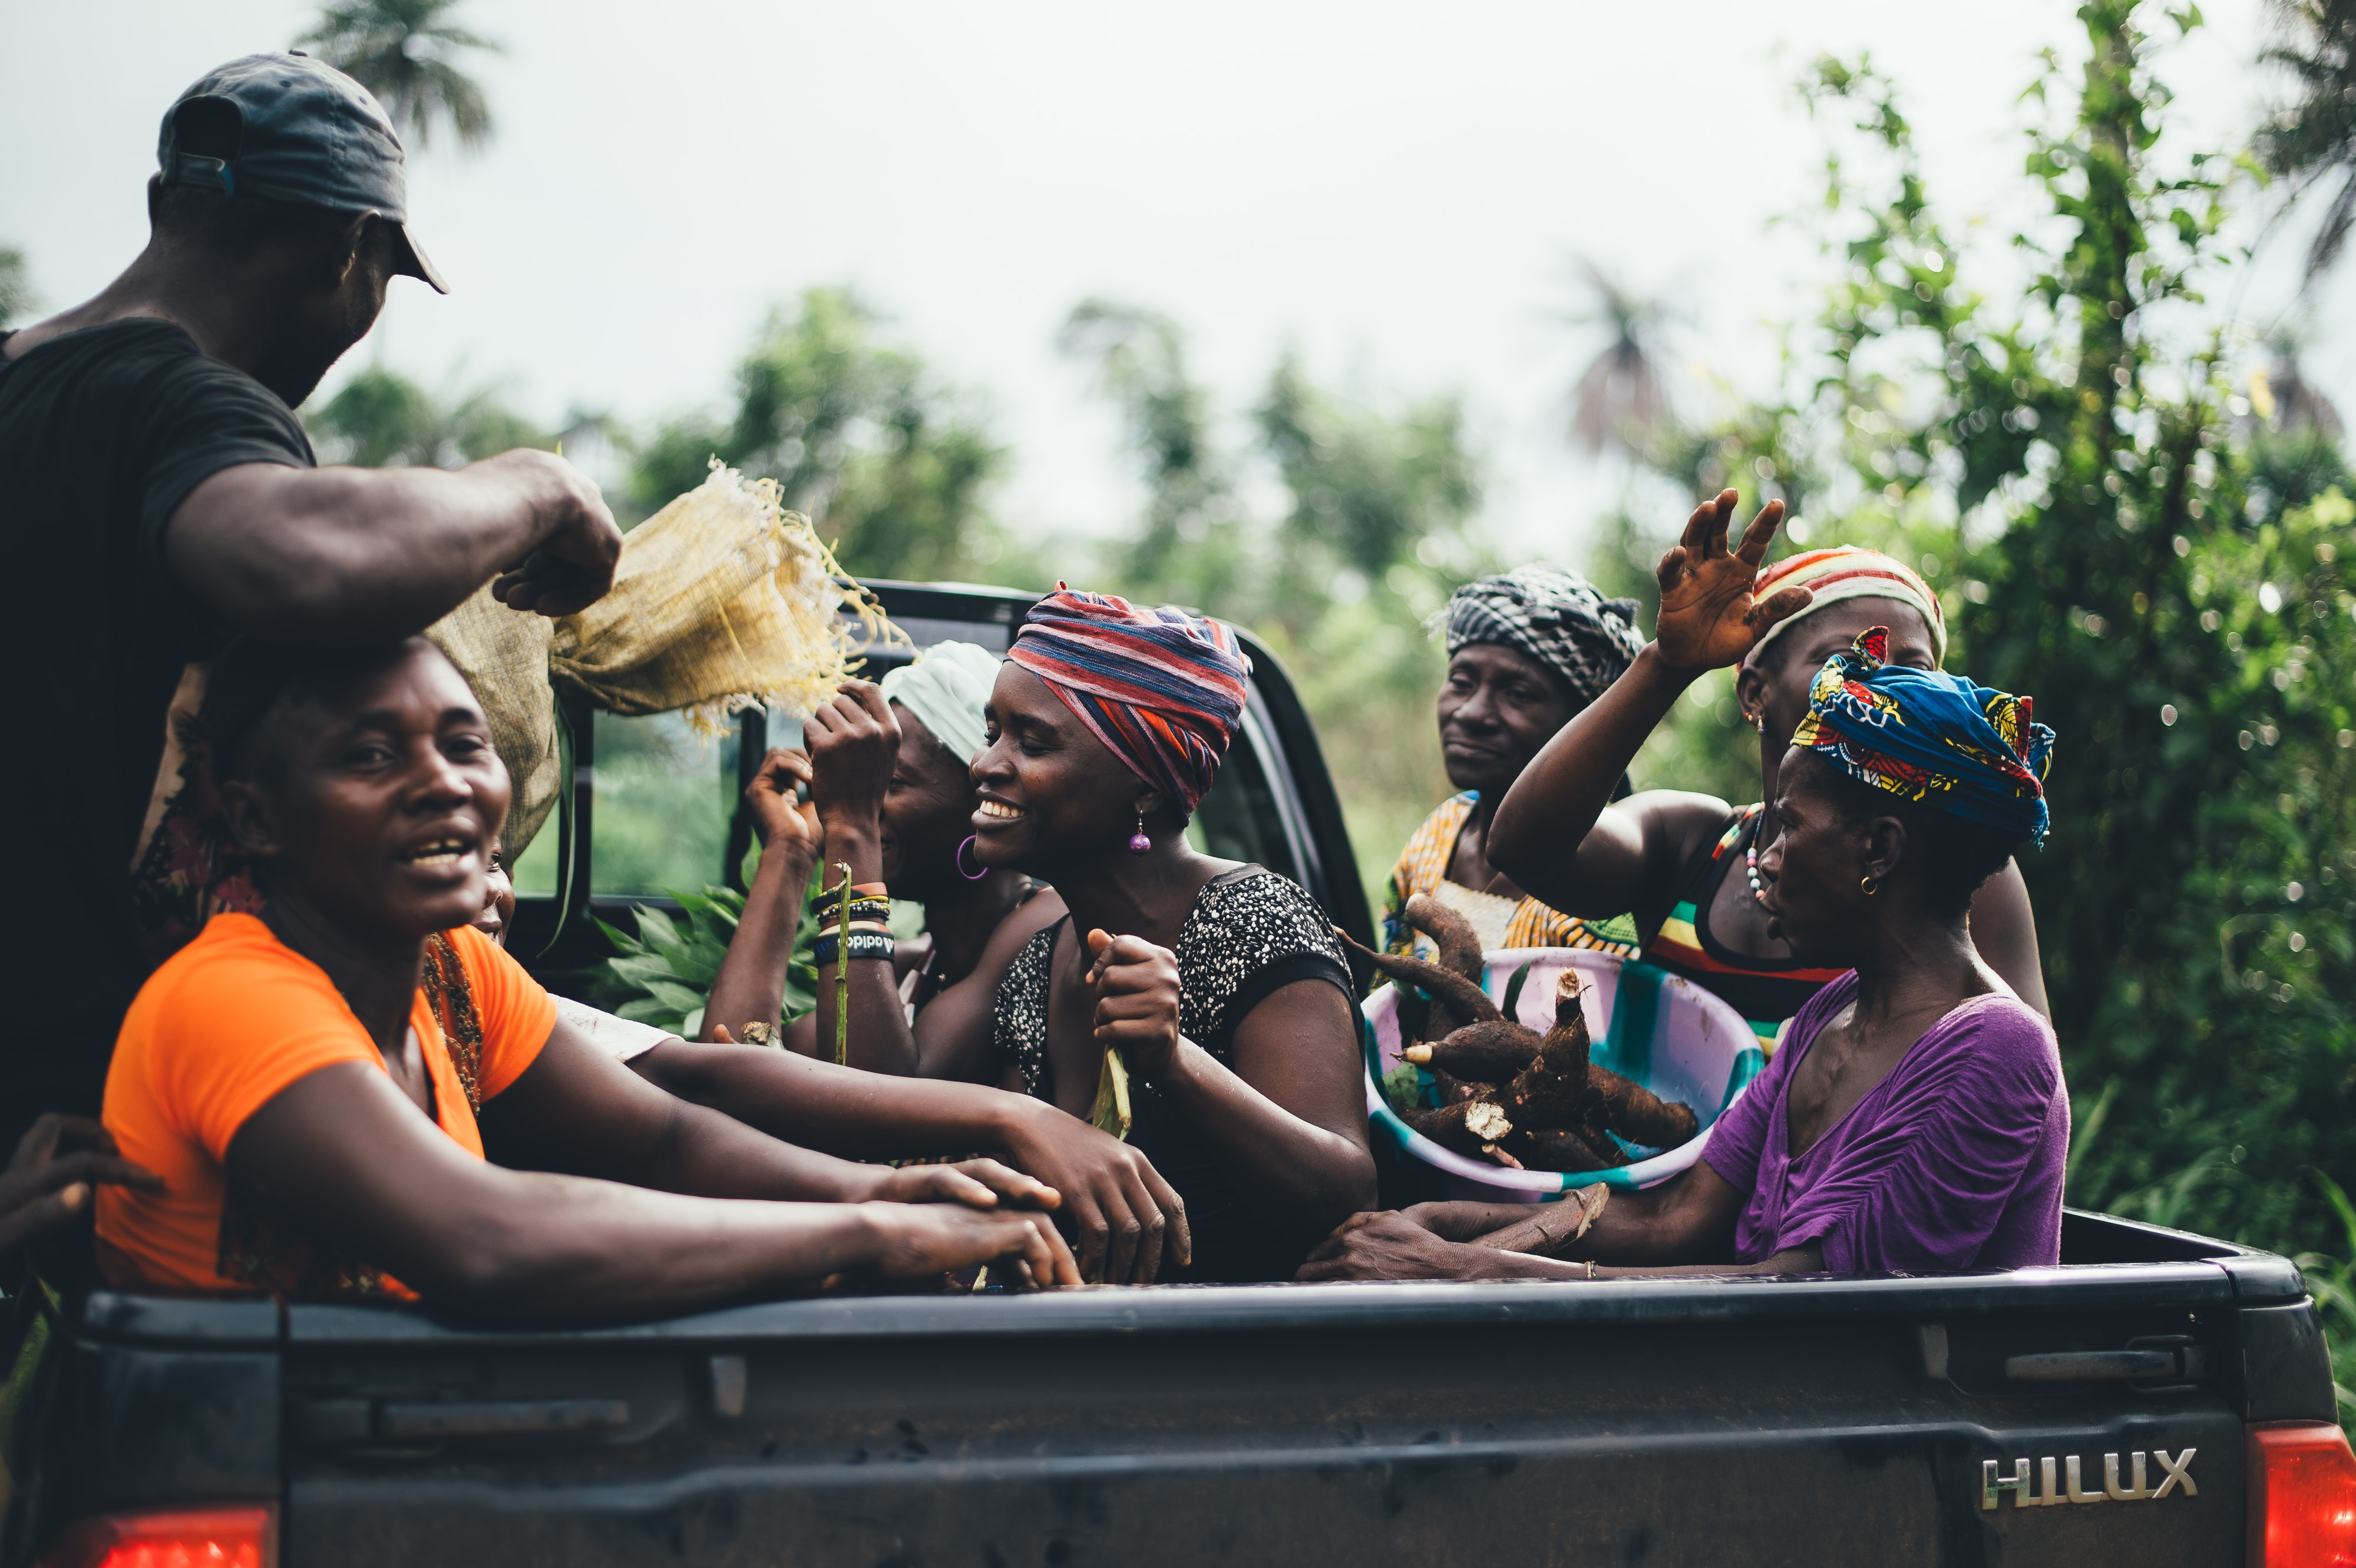 group of people on black Toyota Hilux truck bed